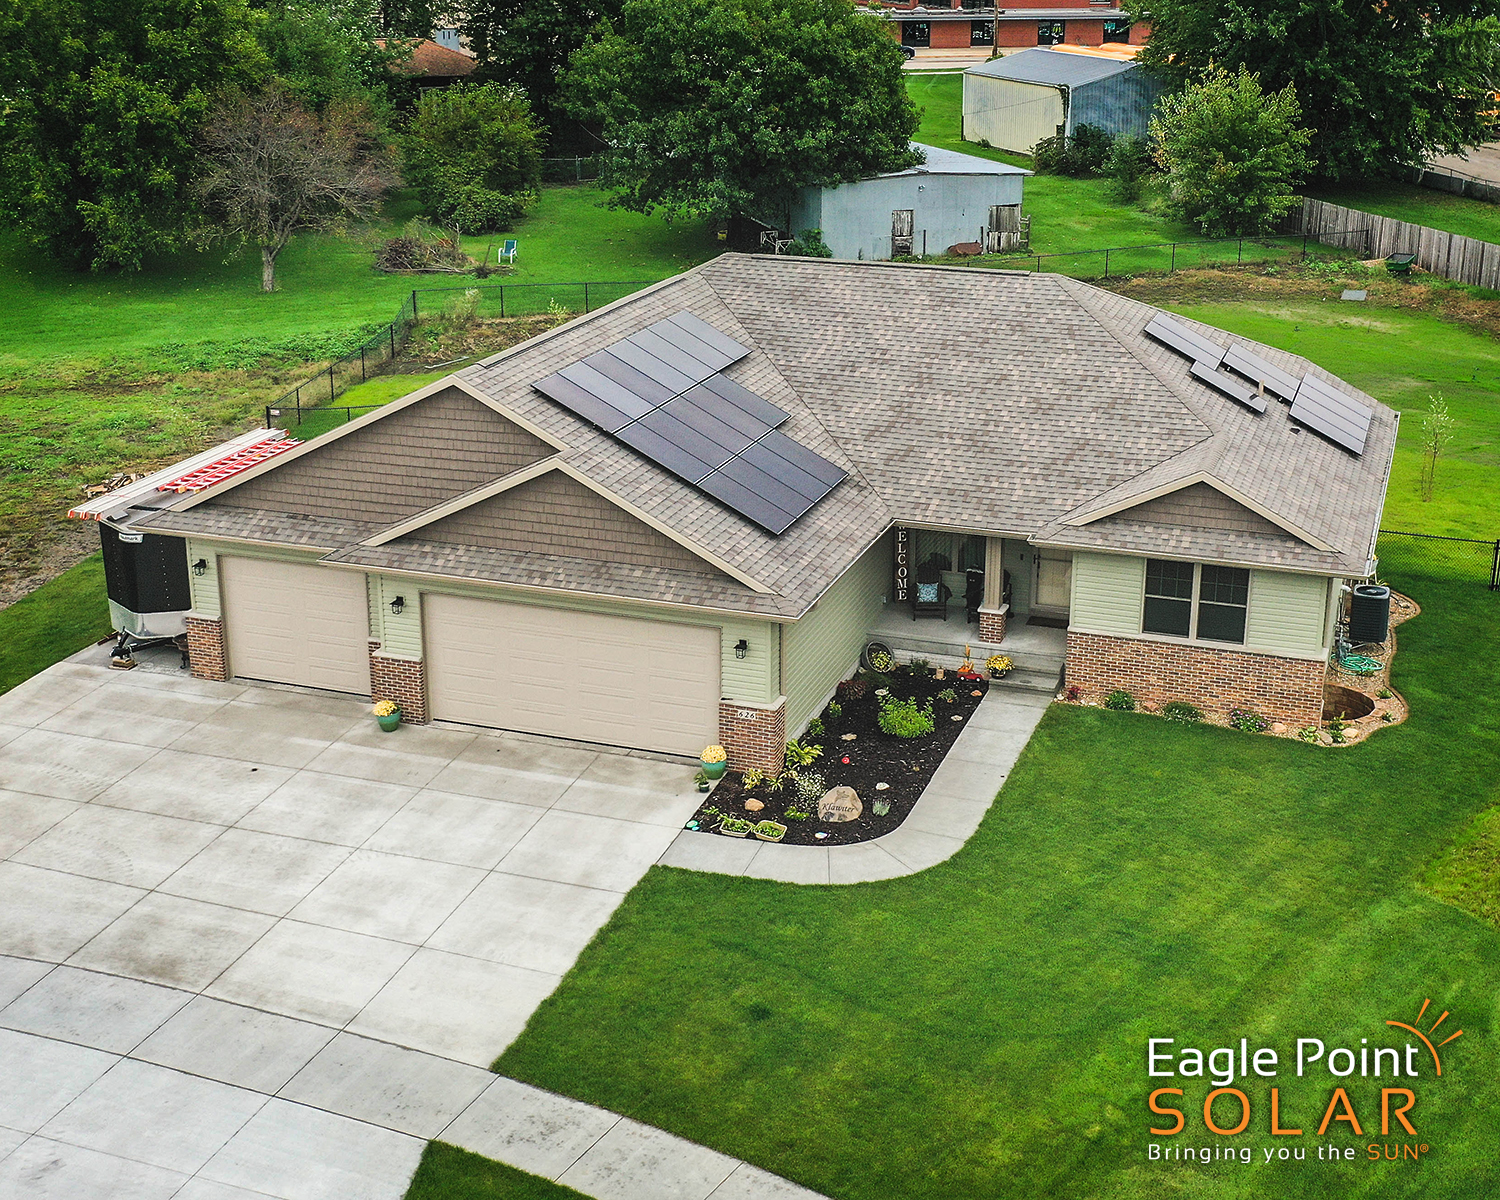 Arial photo of Klawiter residence roof mounted solar array.